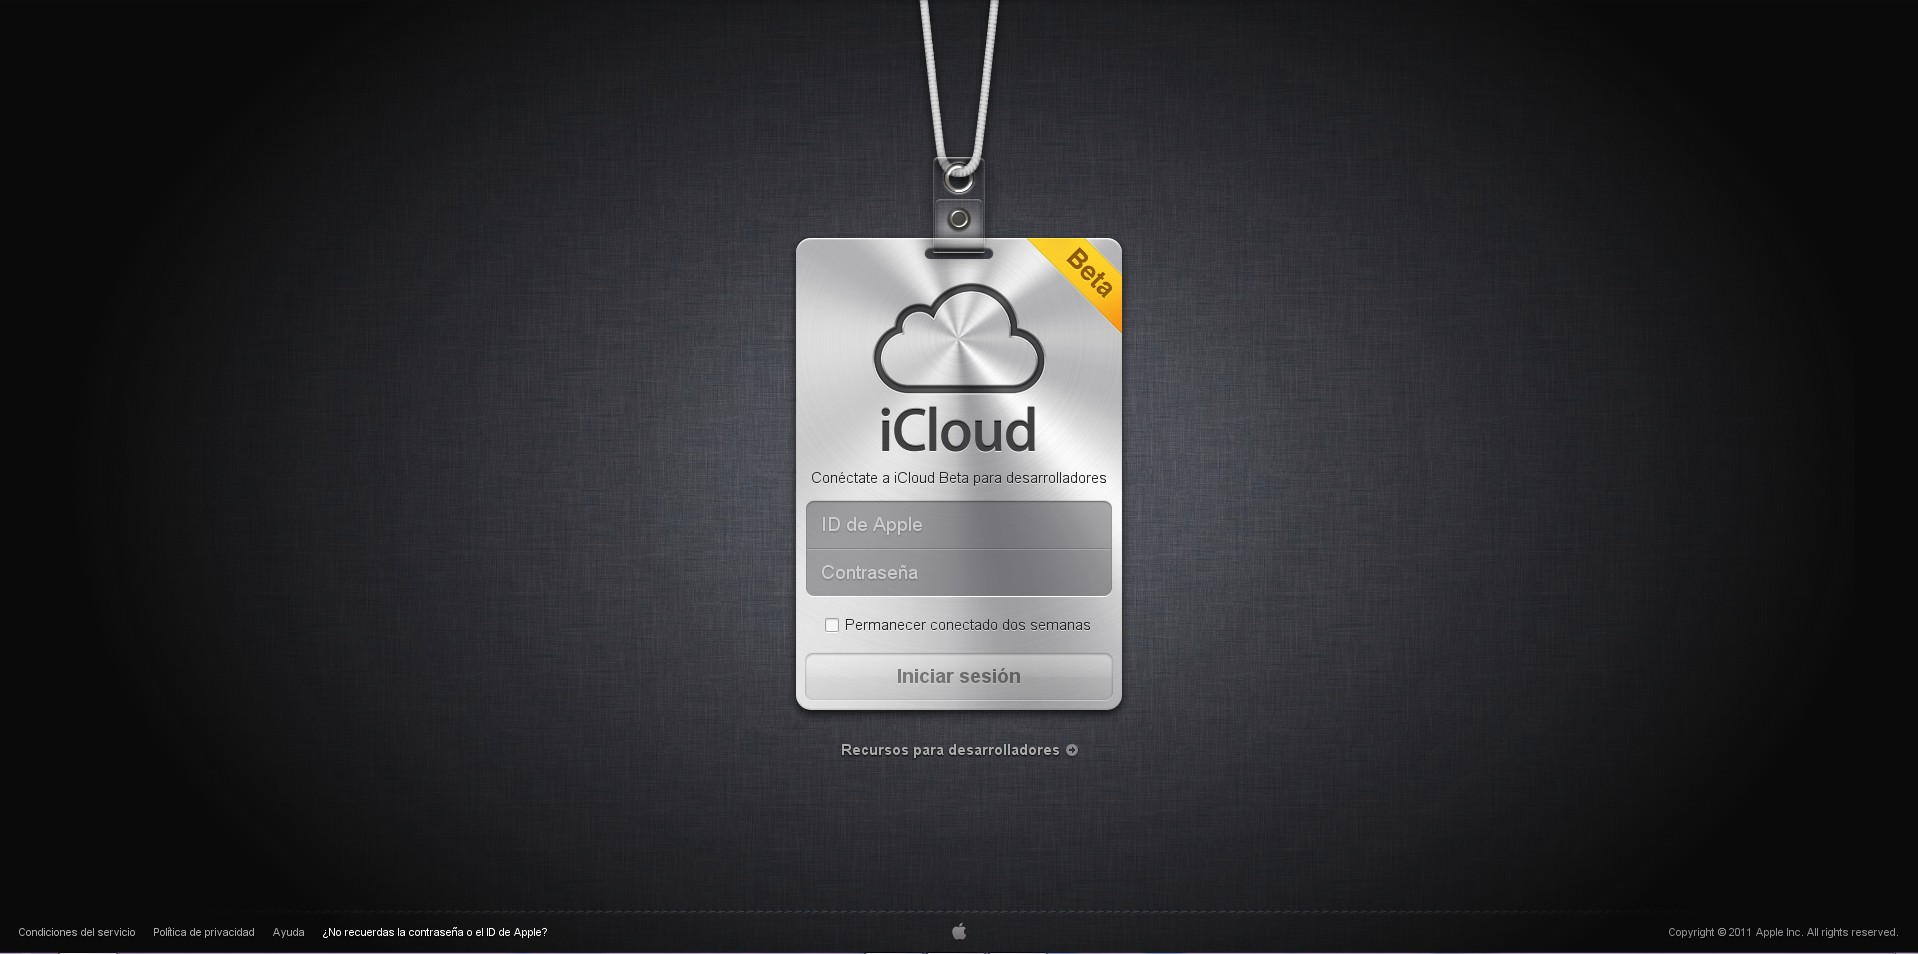 Captura de pantalla de iCoud.com